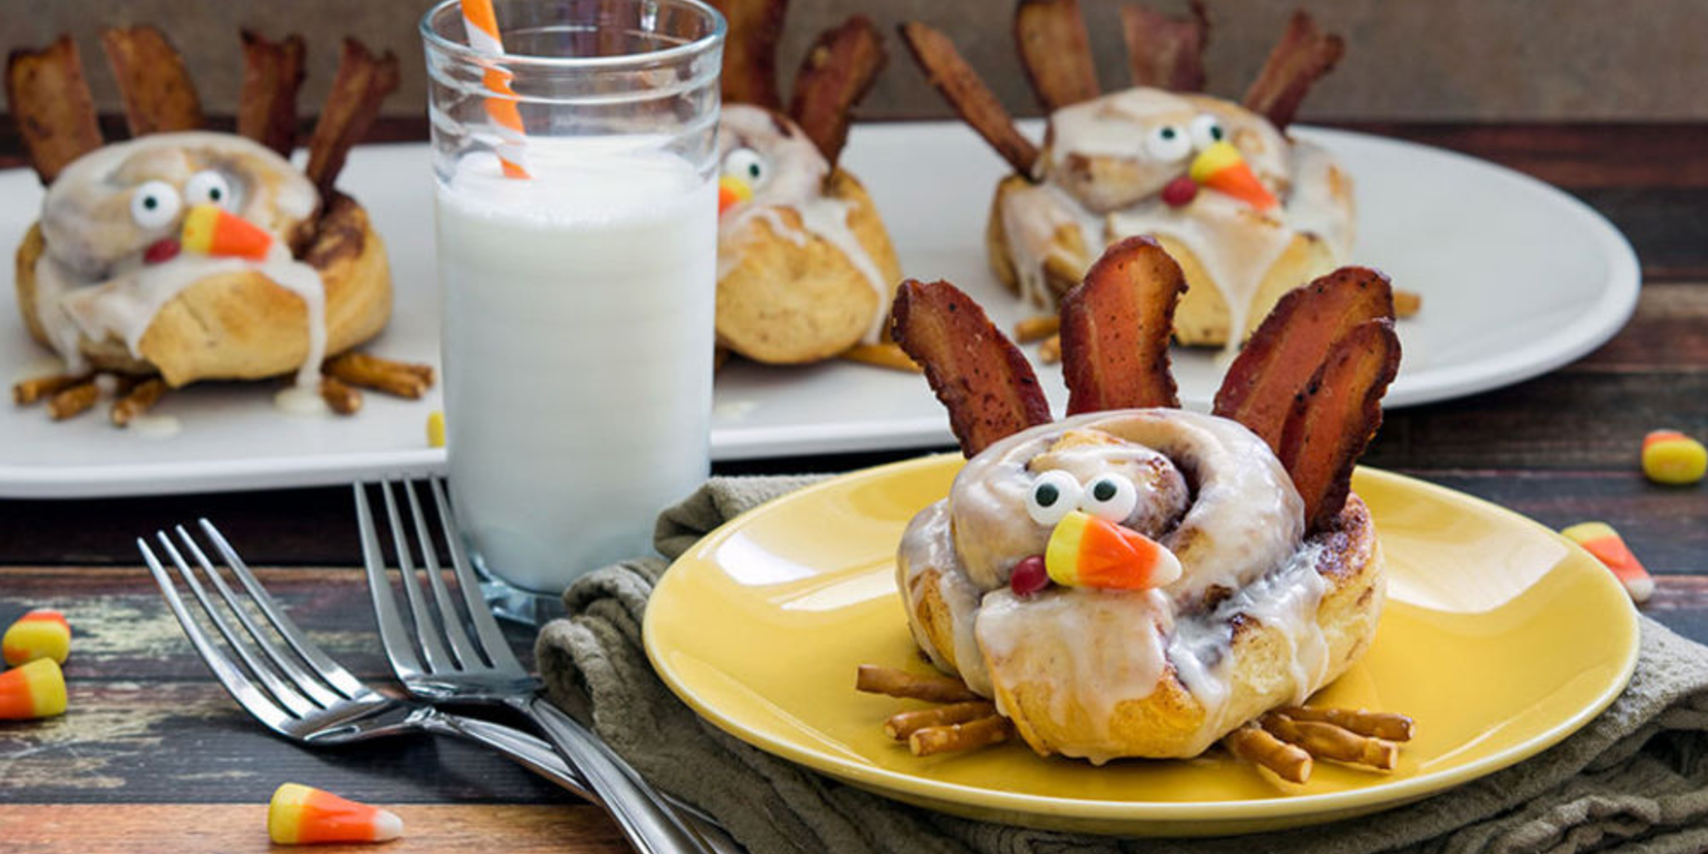 Cinnamon Roll Turkeys are the Most Adorable Thanksgiving Breakfast